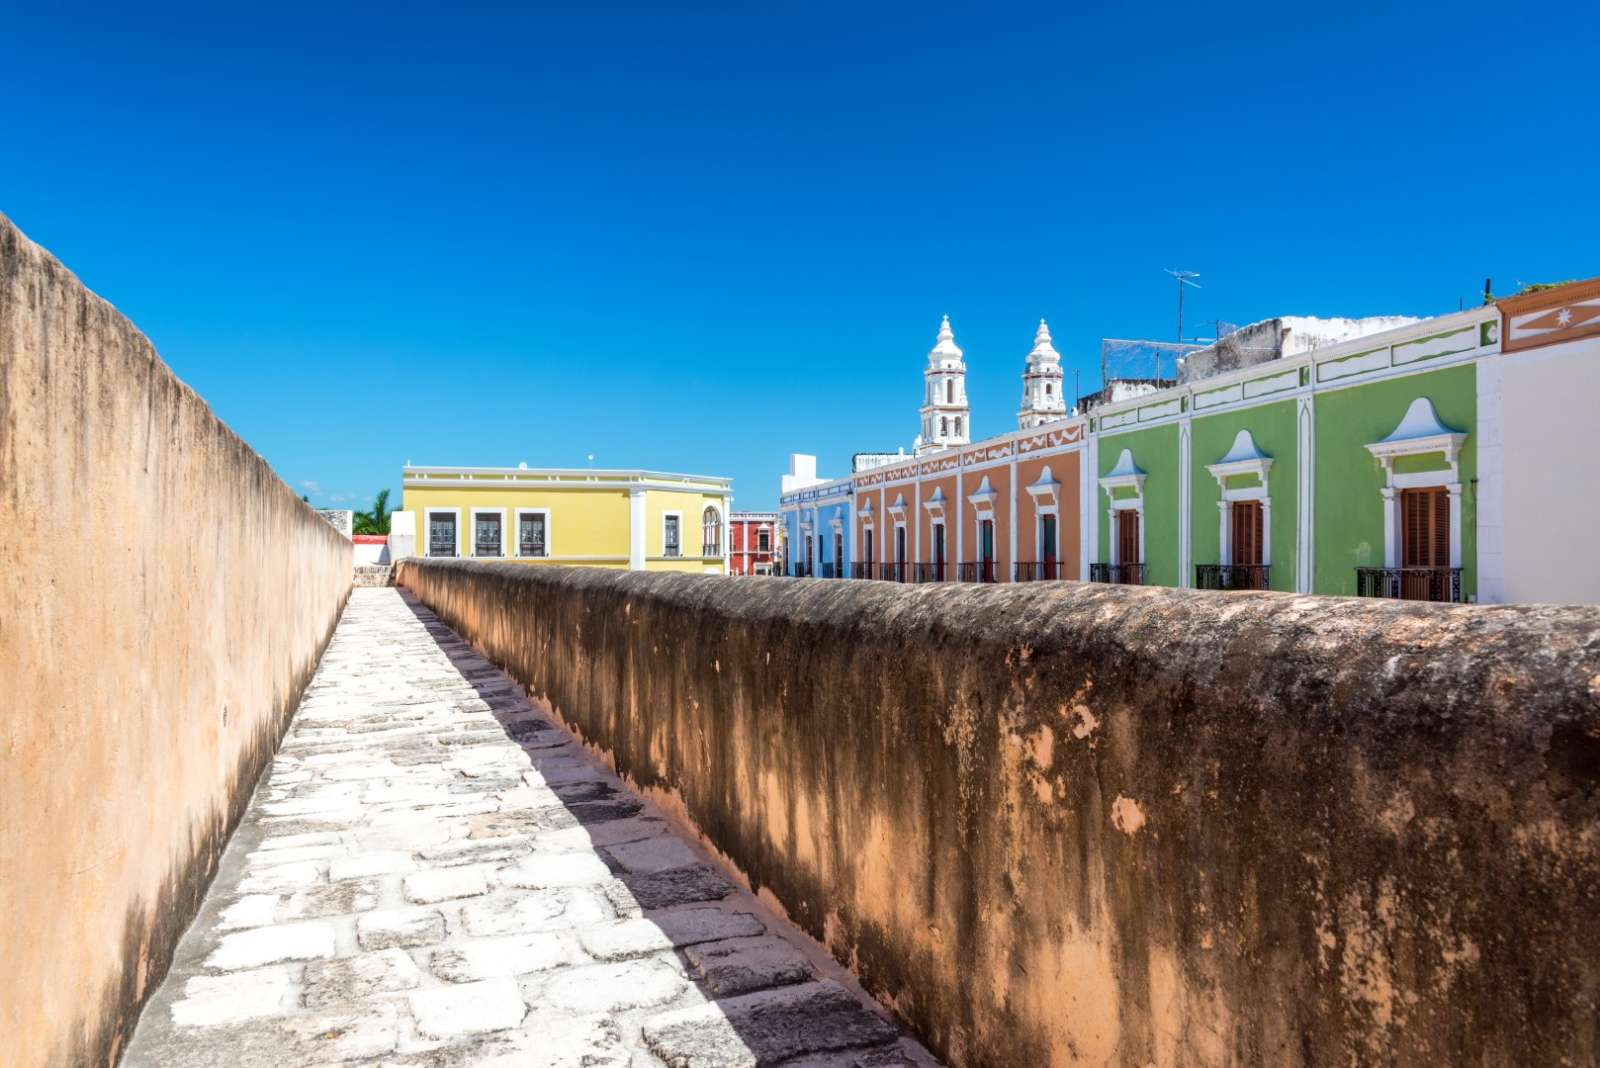 City wall and colourful buildings in Campeche Mexico